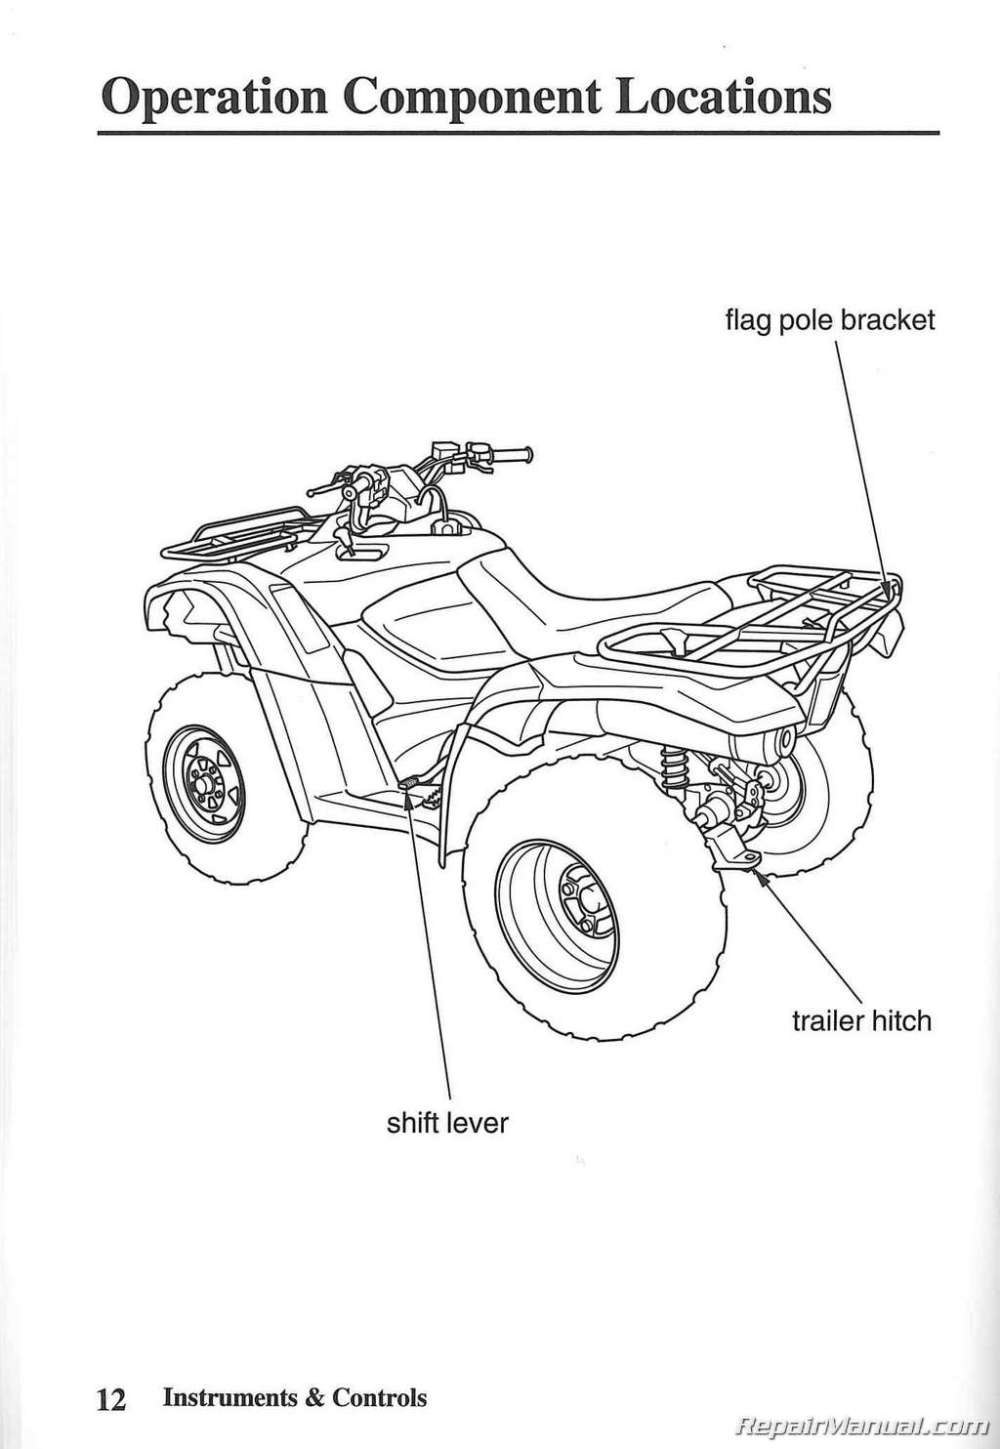 medium resolution of 2010 honda rancher diagram wiring diagram for you yamaha banshee diagram 2010 honda rancher diagram